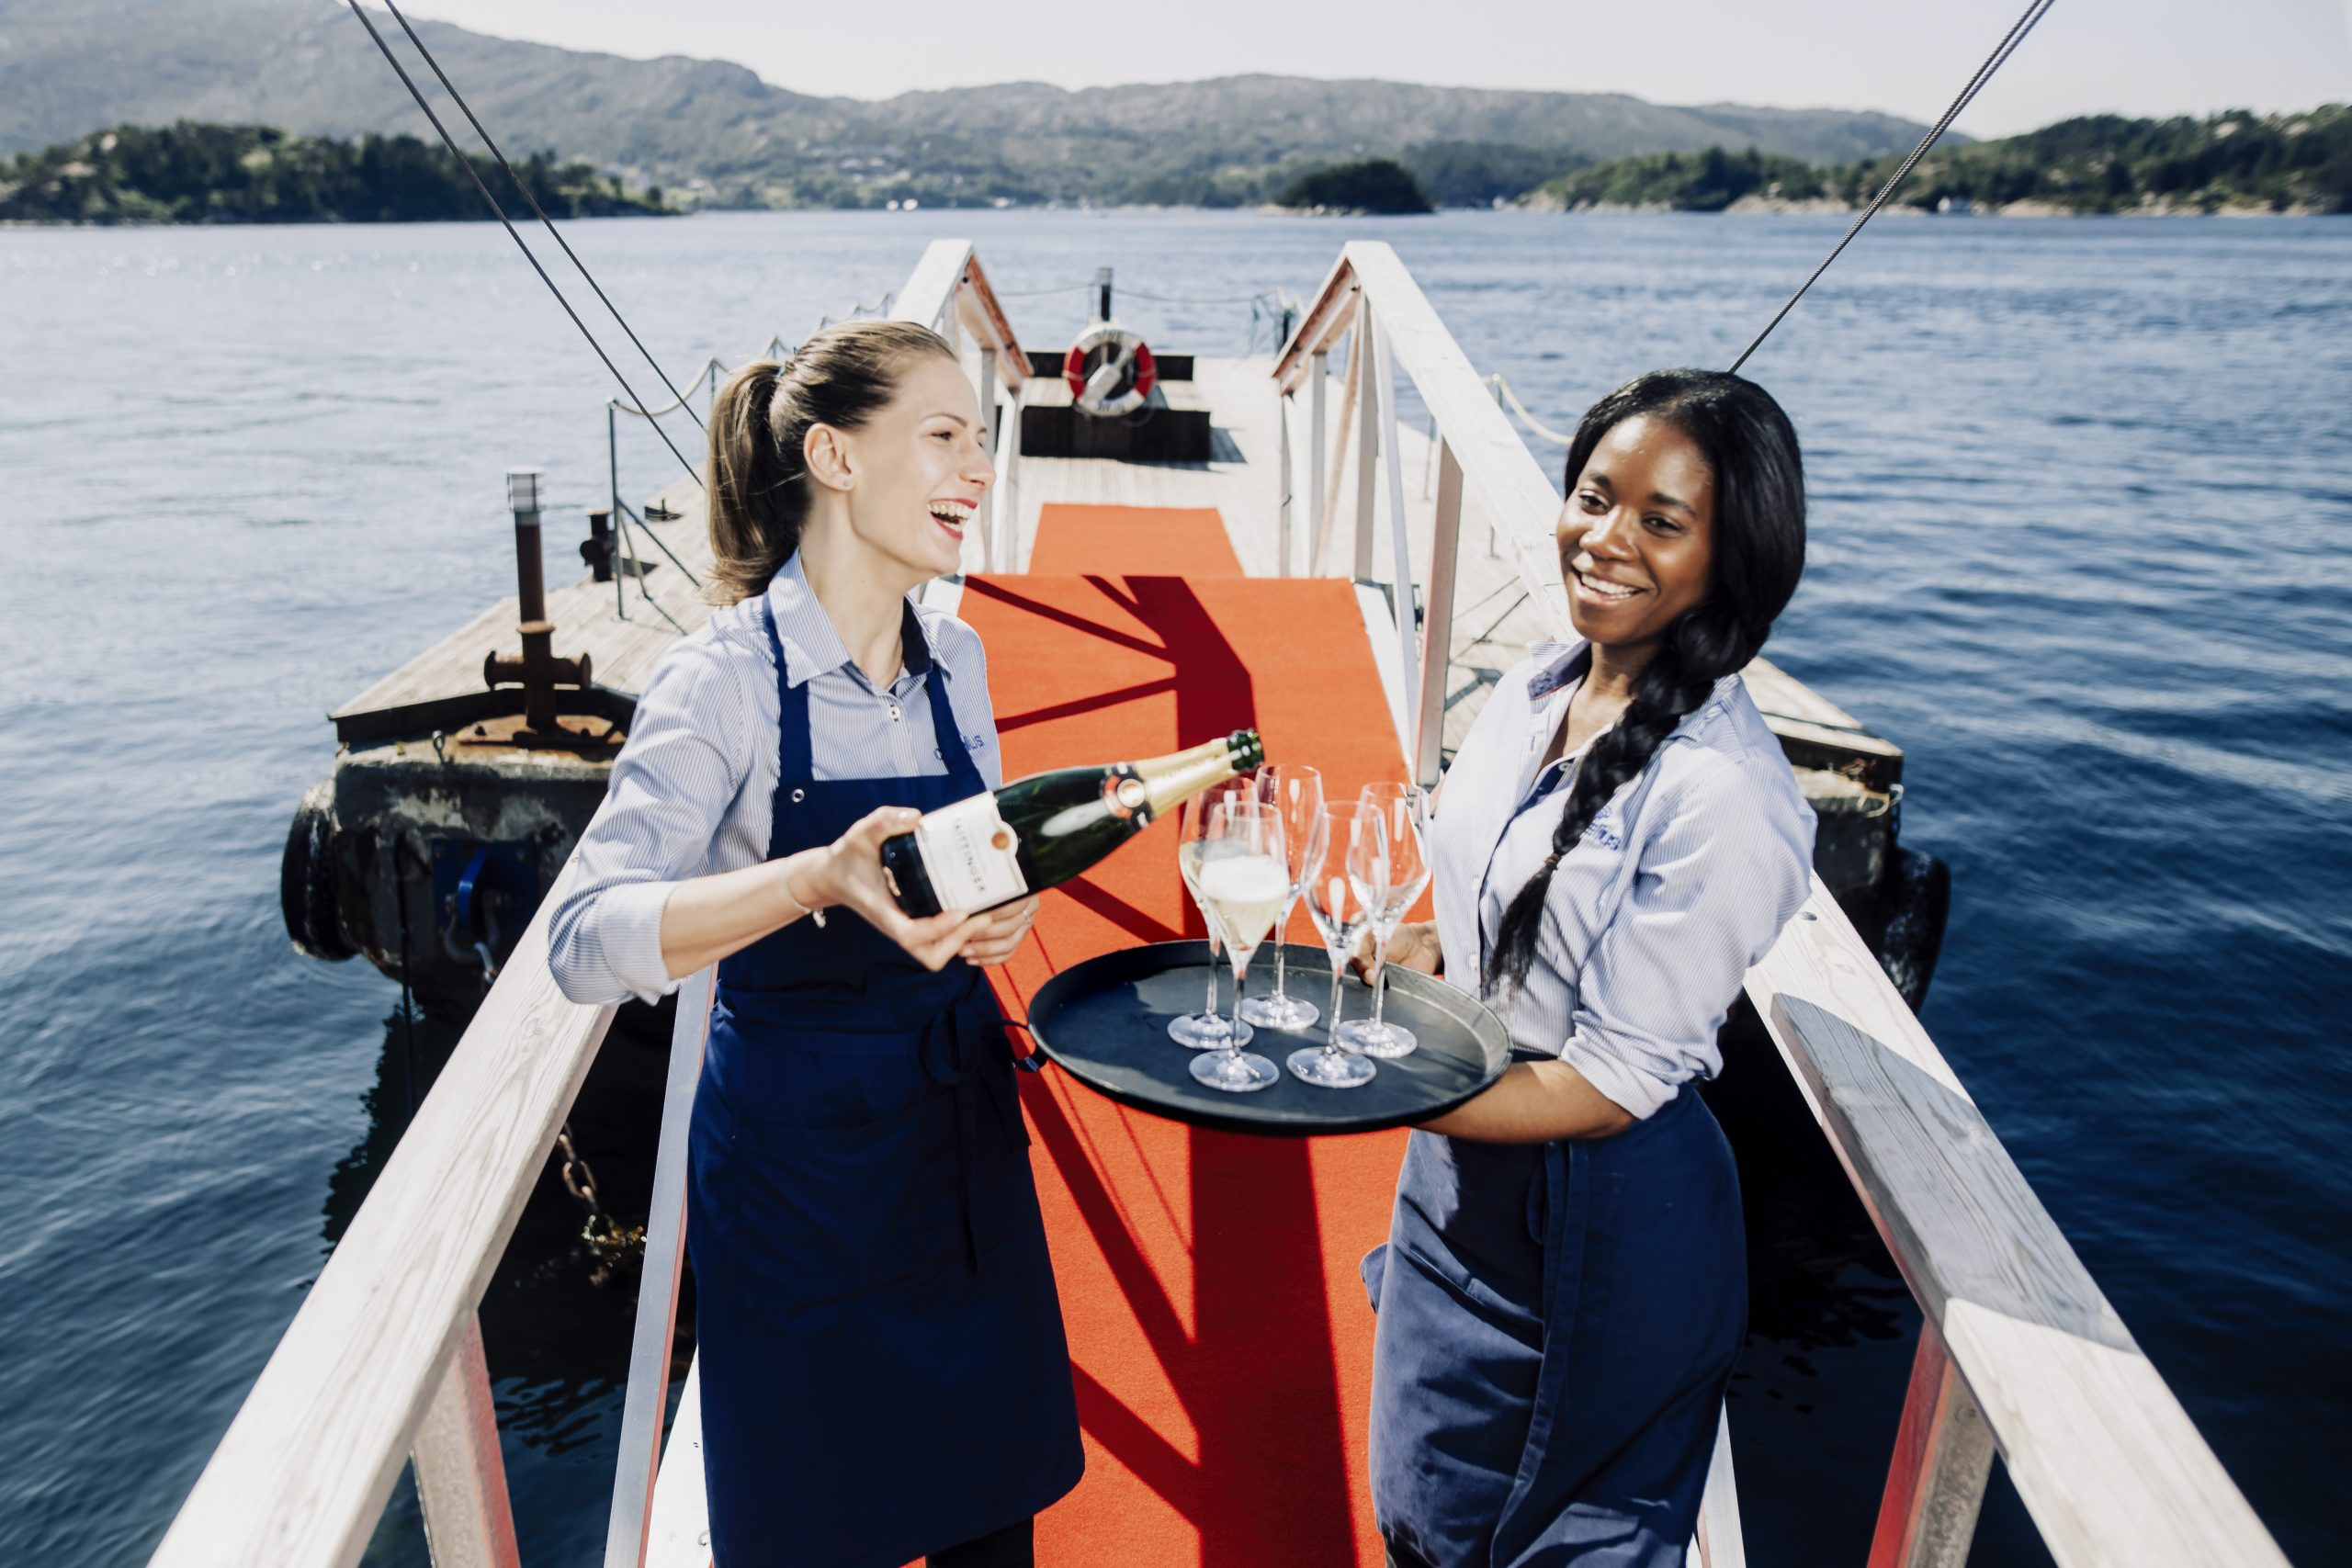 Two waiters rather sparkling wine in the glass on a pier